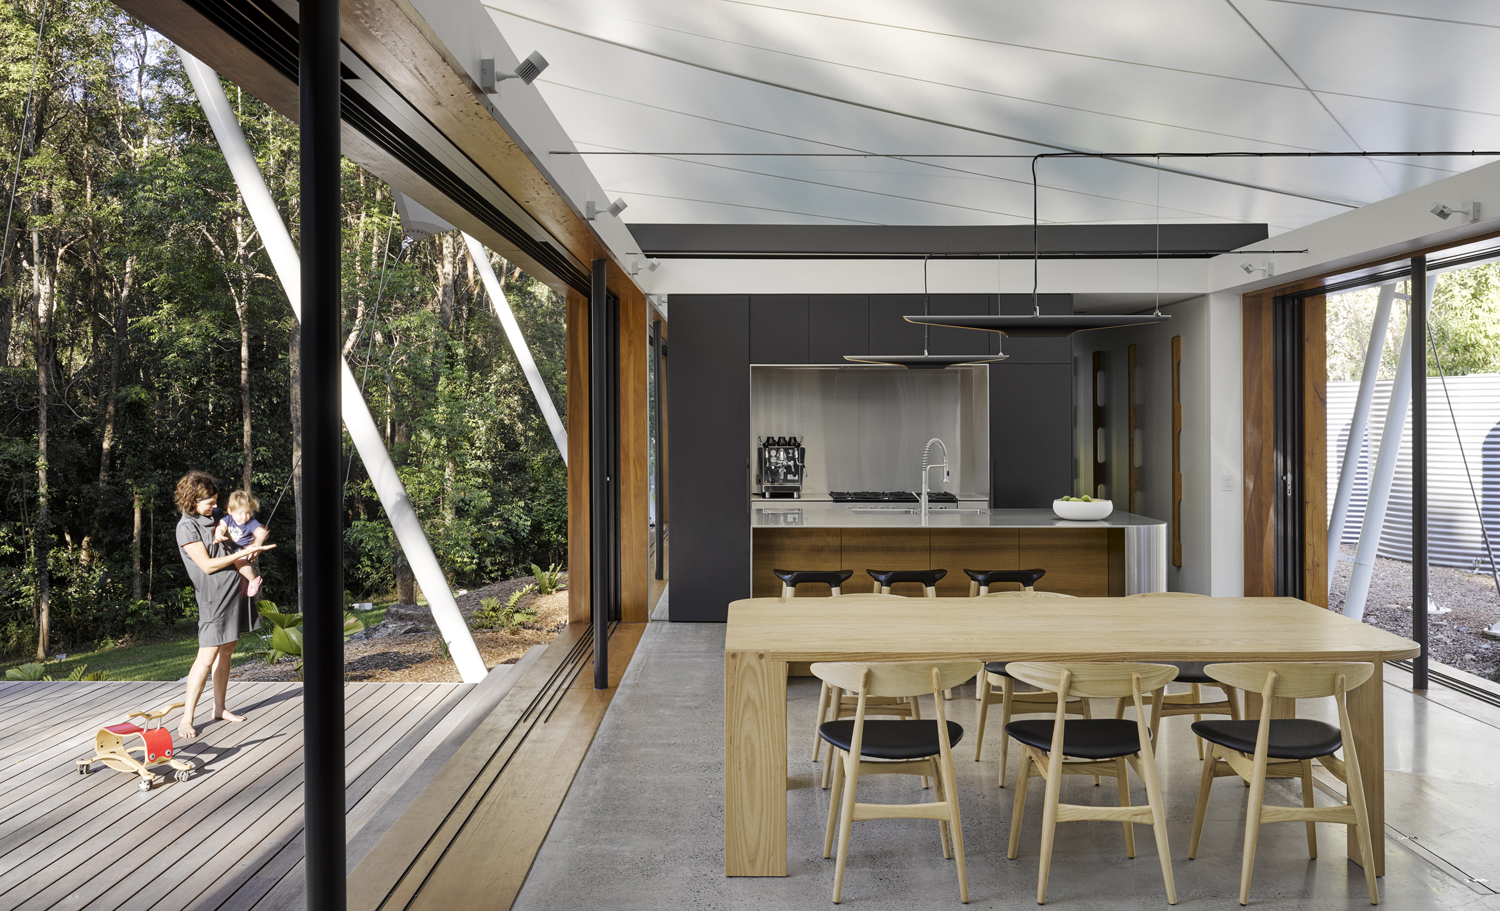 House design tv series - Fans Of The Tv Series Grand Designs Australia Might Recognise The Award Winning Home As It Was Recently Featured On The Popular Program